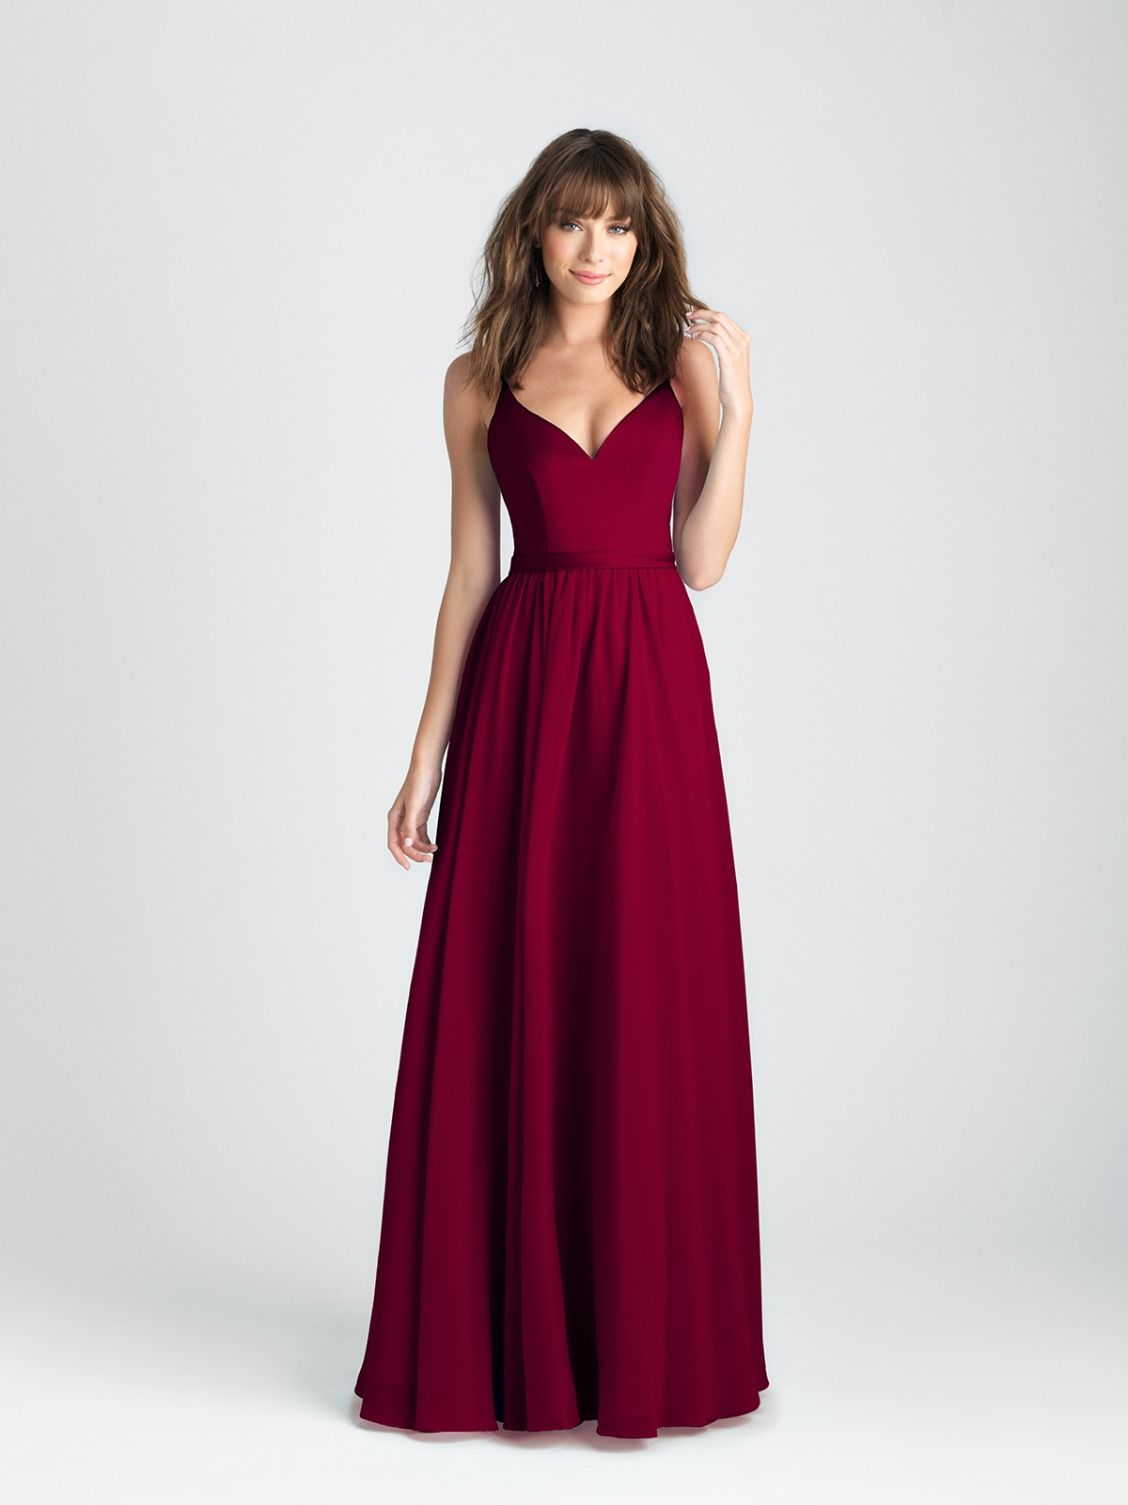 c756f2fd618 Allure Bridesmaids style 1503 in burgundy